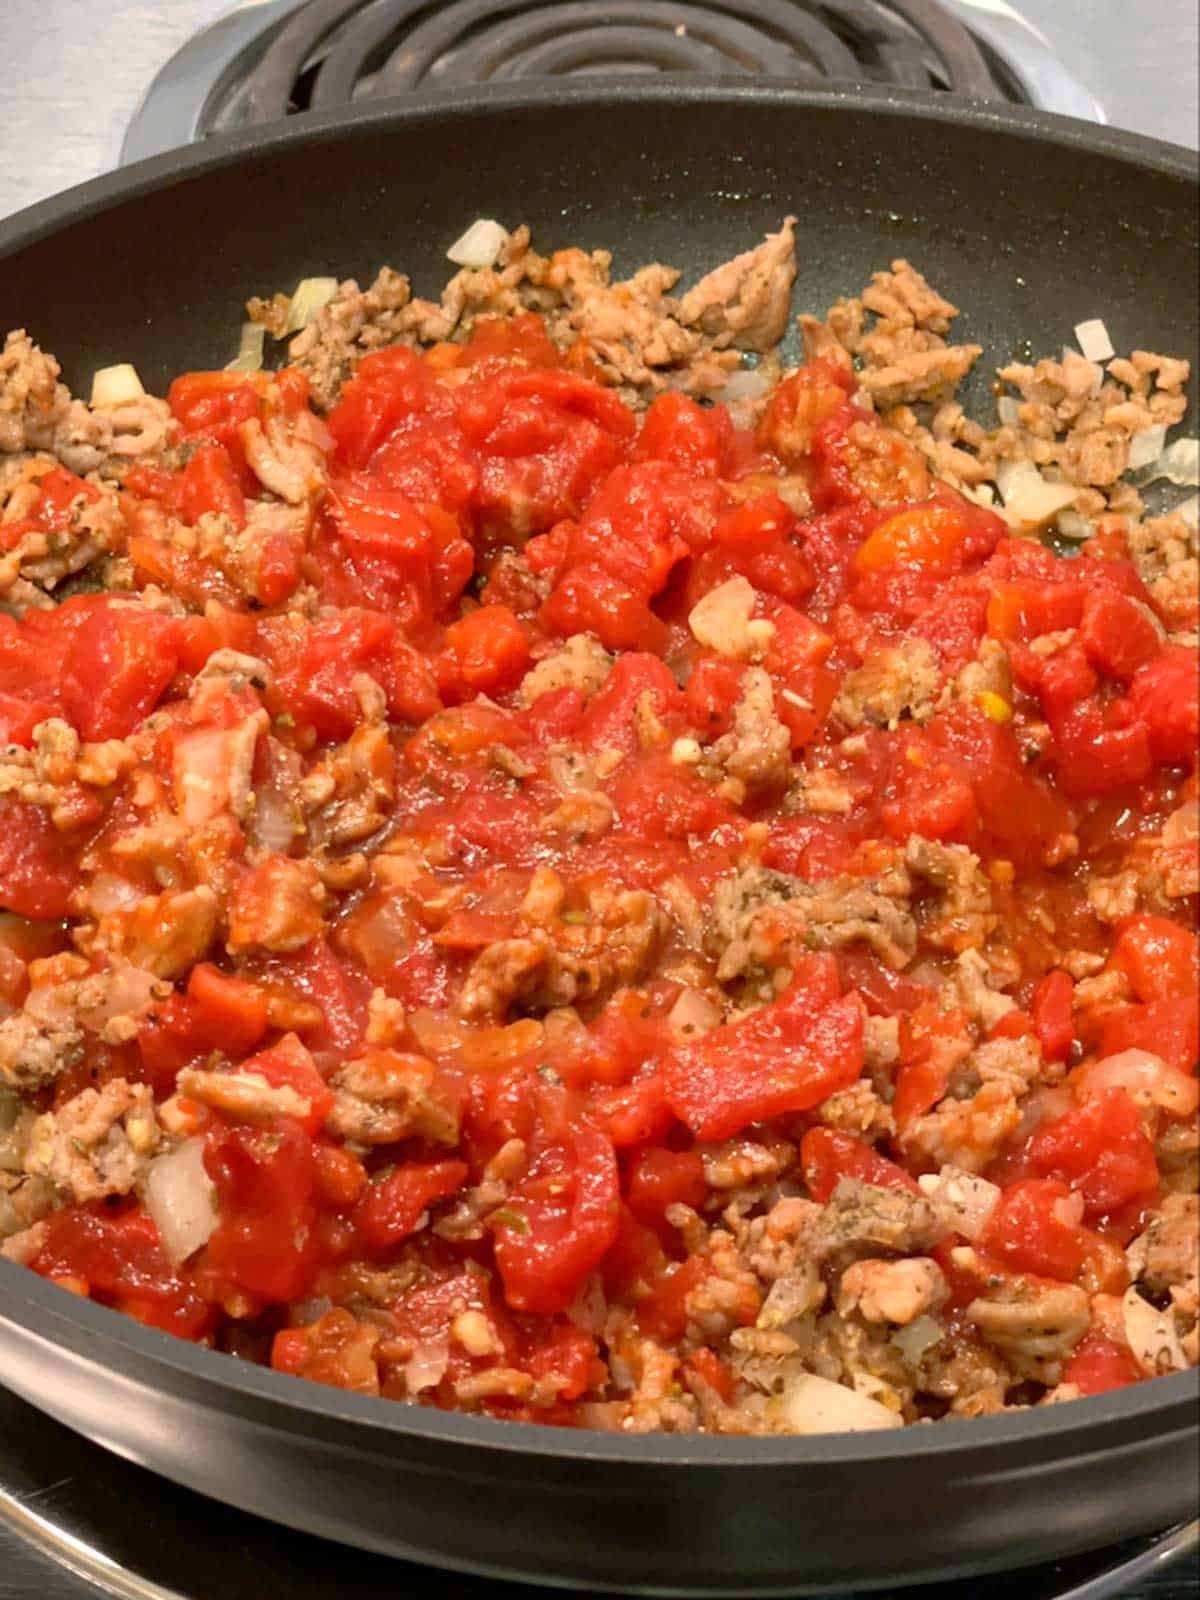 Petit diced tomatoes, tomato sauce and tomato paste added to the sausage mixture.